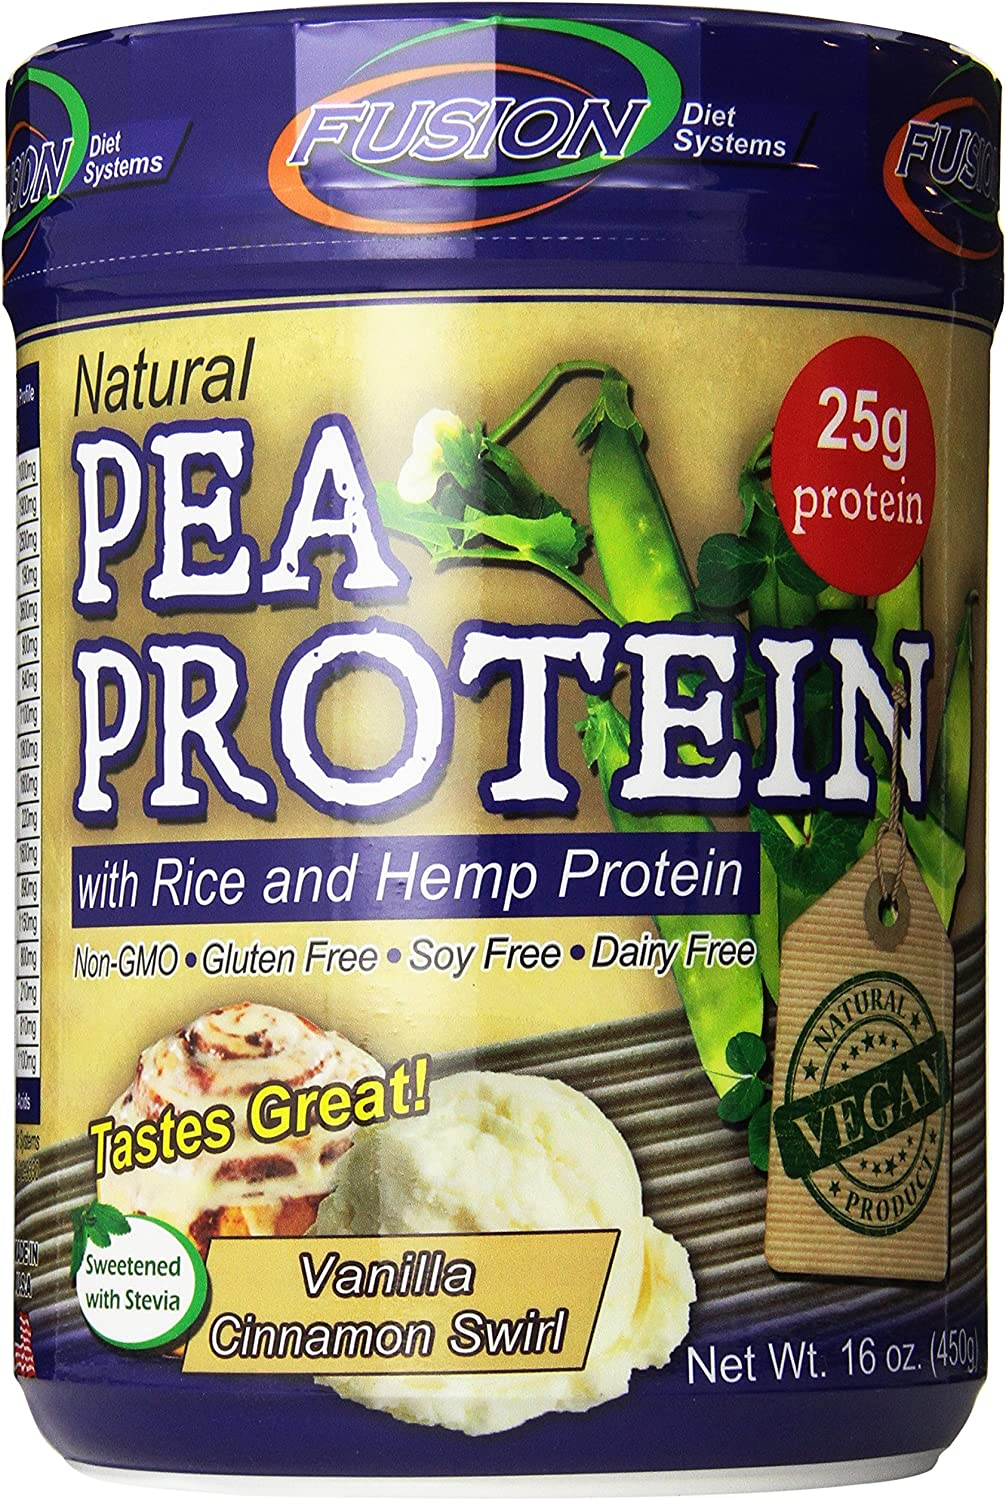 fusion diet systems natural pea protein